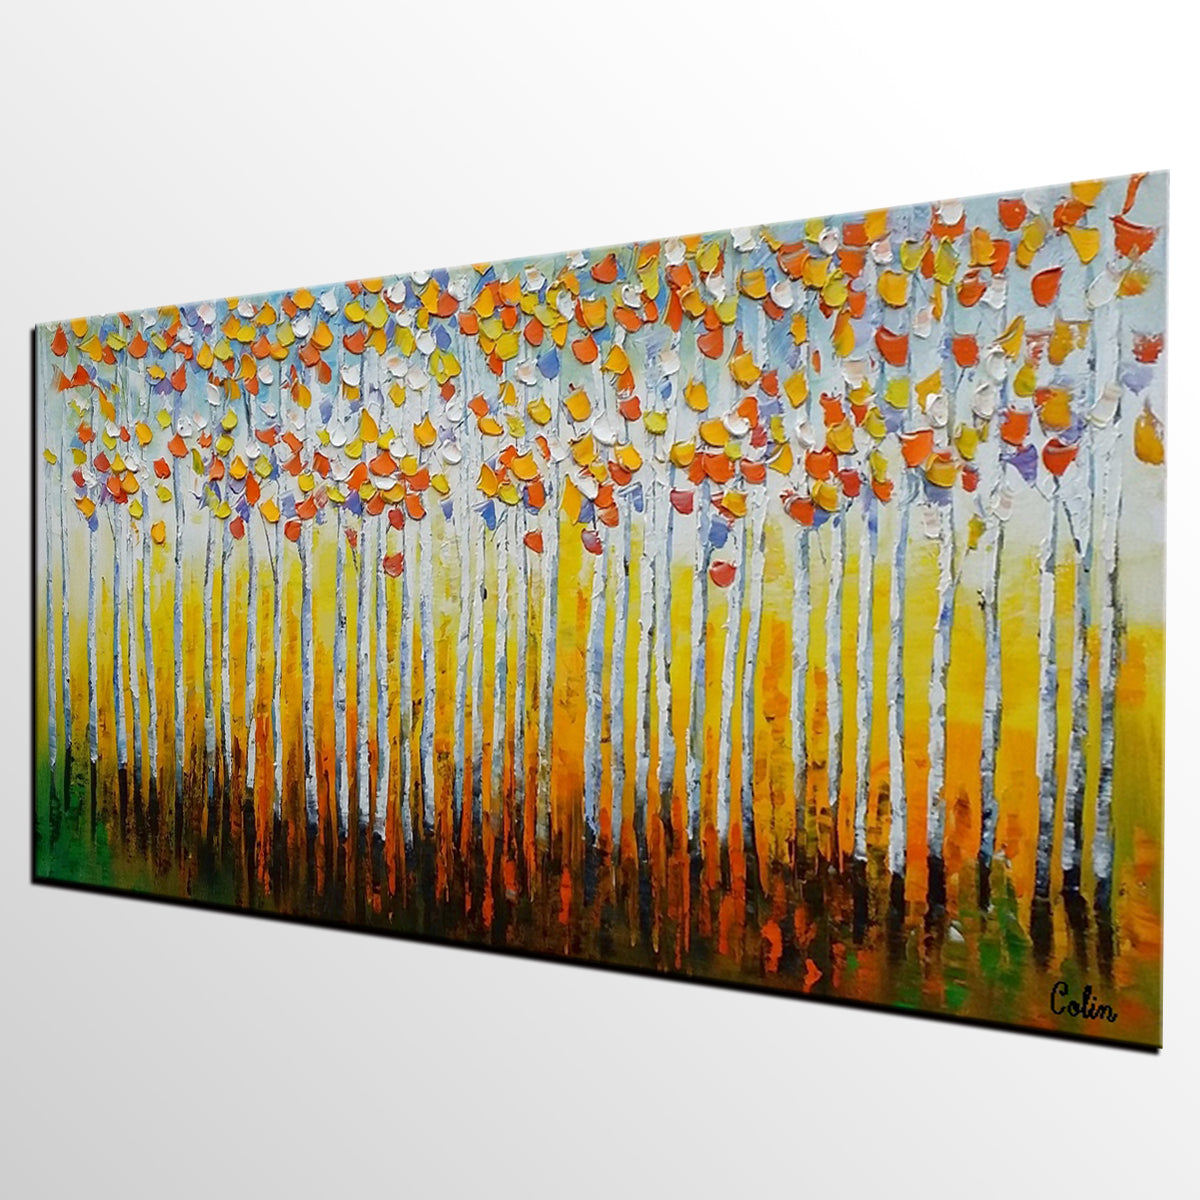 Birch Tree Painting, Landscape Painting, Oil Painting, Abstract Painting, Large Art, Canvas Art, Bedroom Wall Art, Canvas Painting